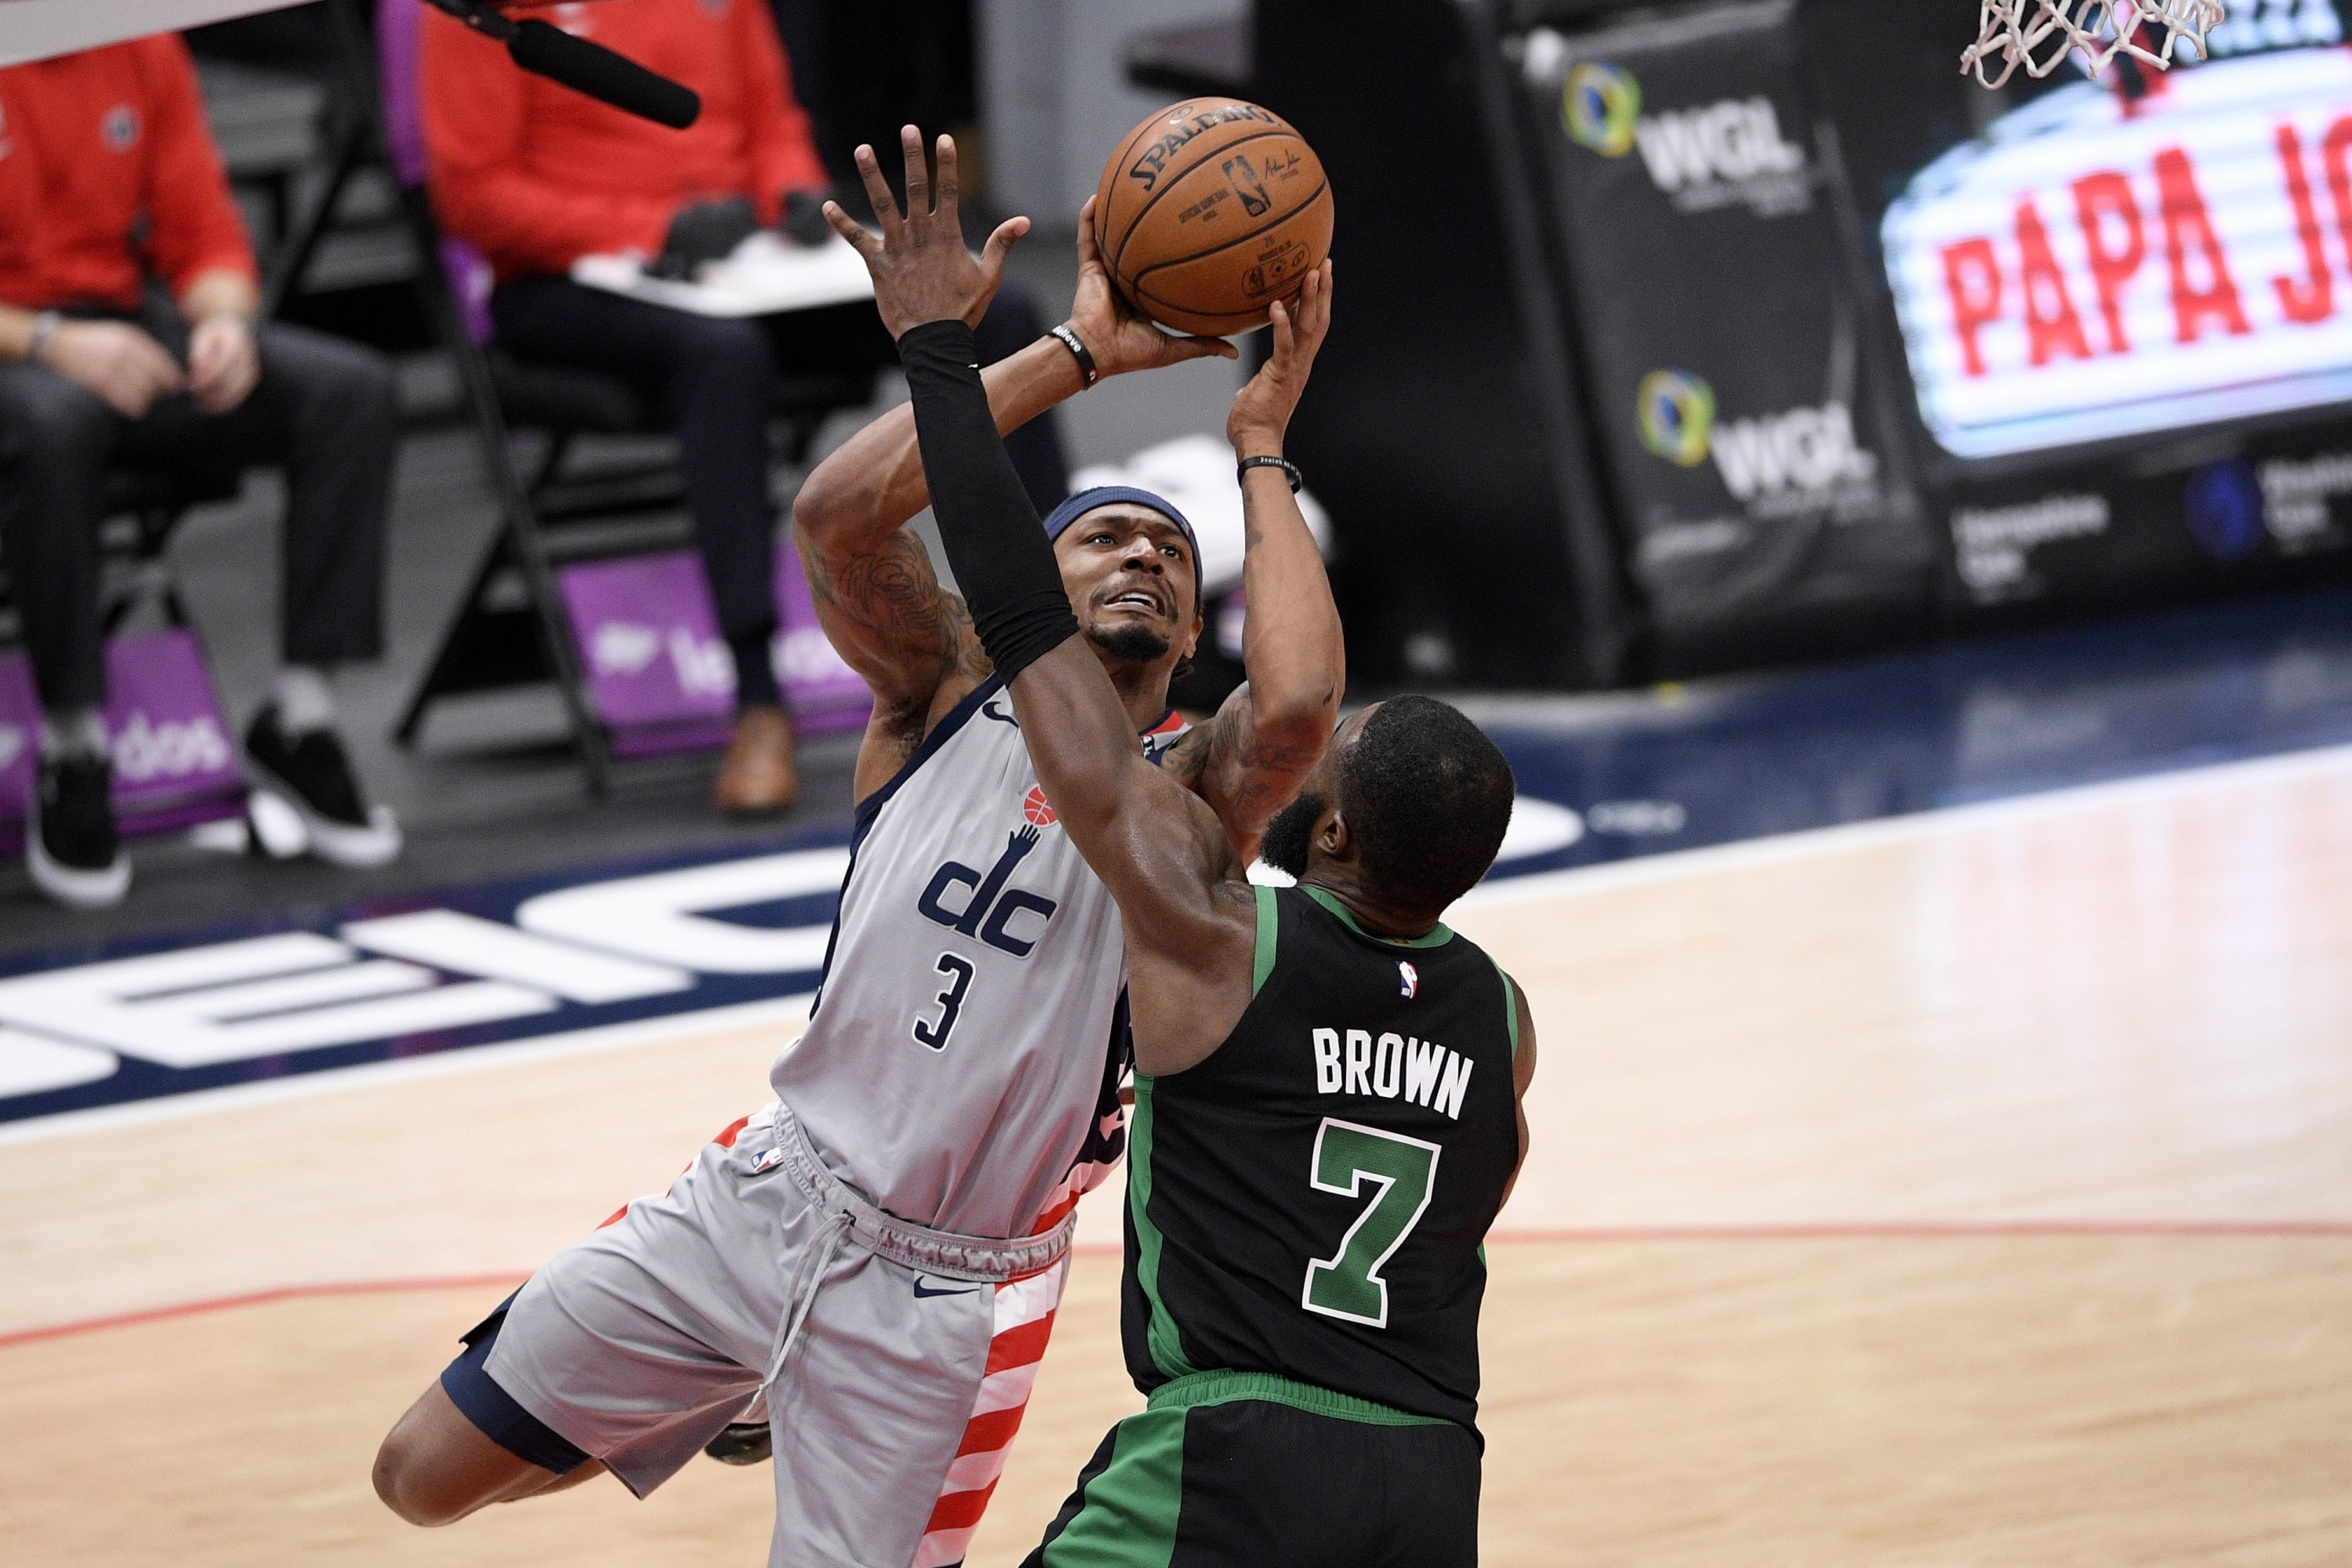 Washington Wizards guard Bradley Beal (L) goes for the basket against Boston Celtics guard Jaylen Brown (R) during the second half of an NBA game, Washington, U.S., Feb. 14, 2021. (AP Photo)